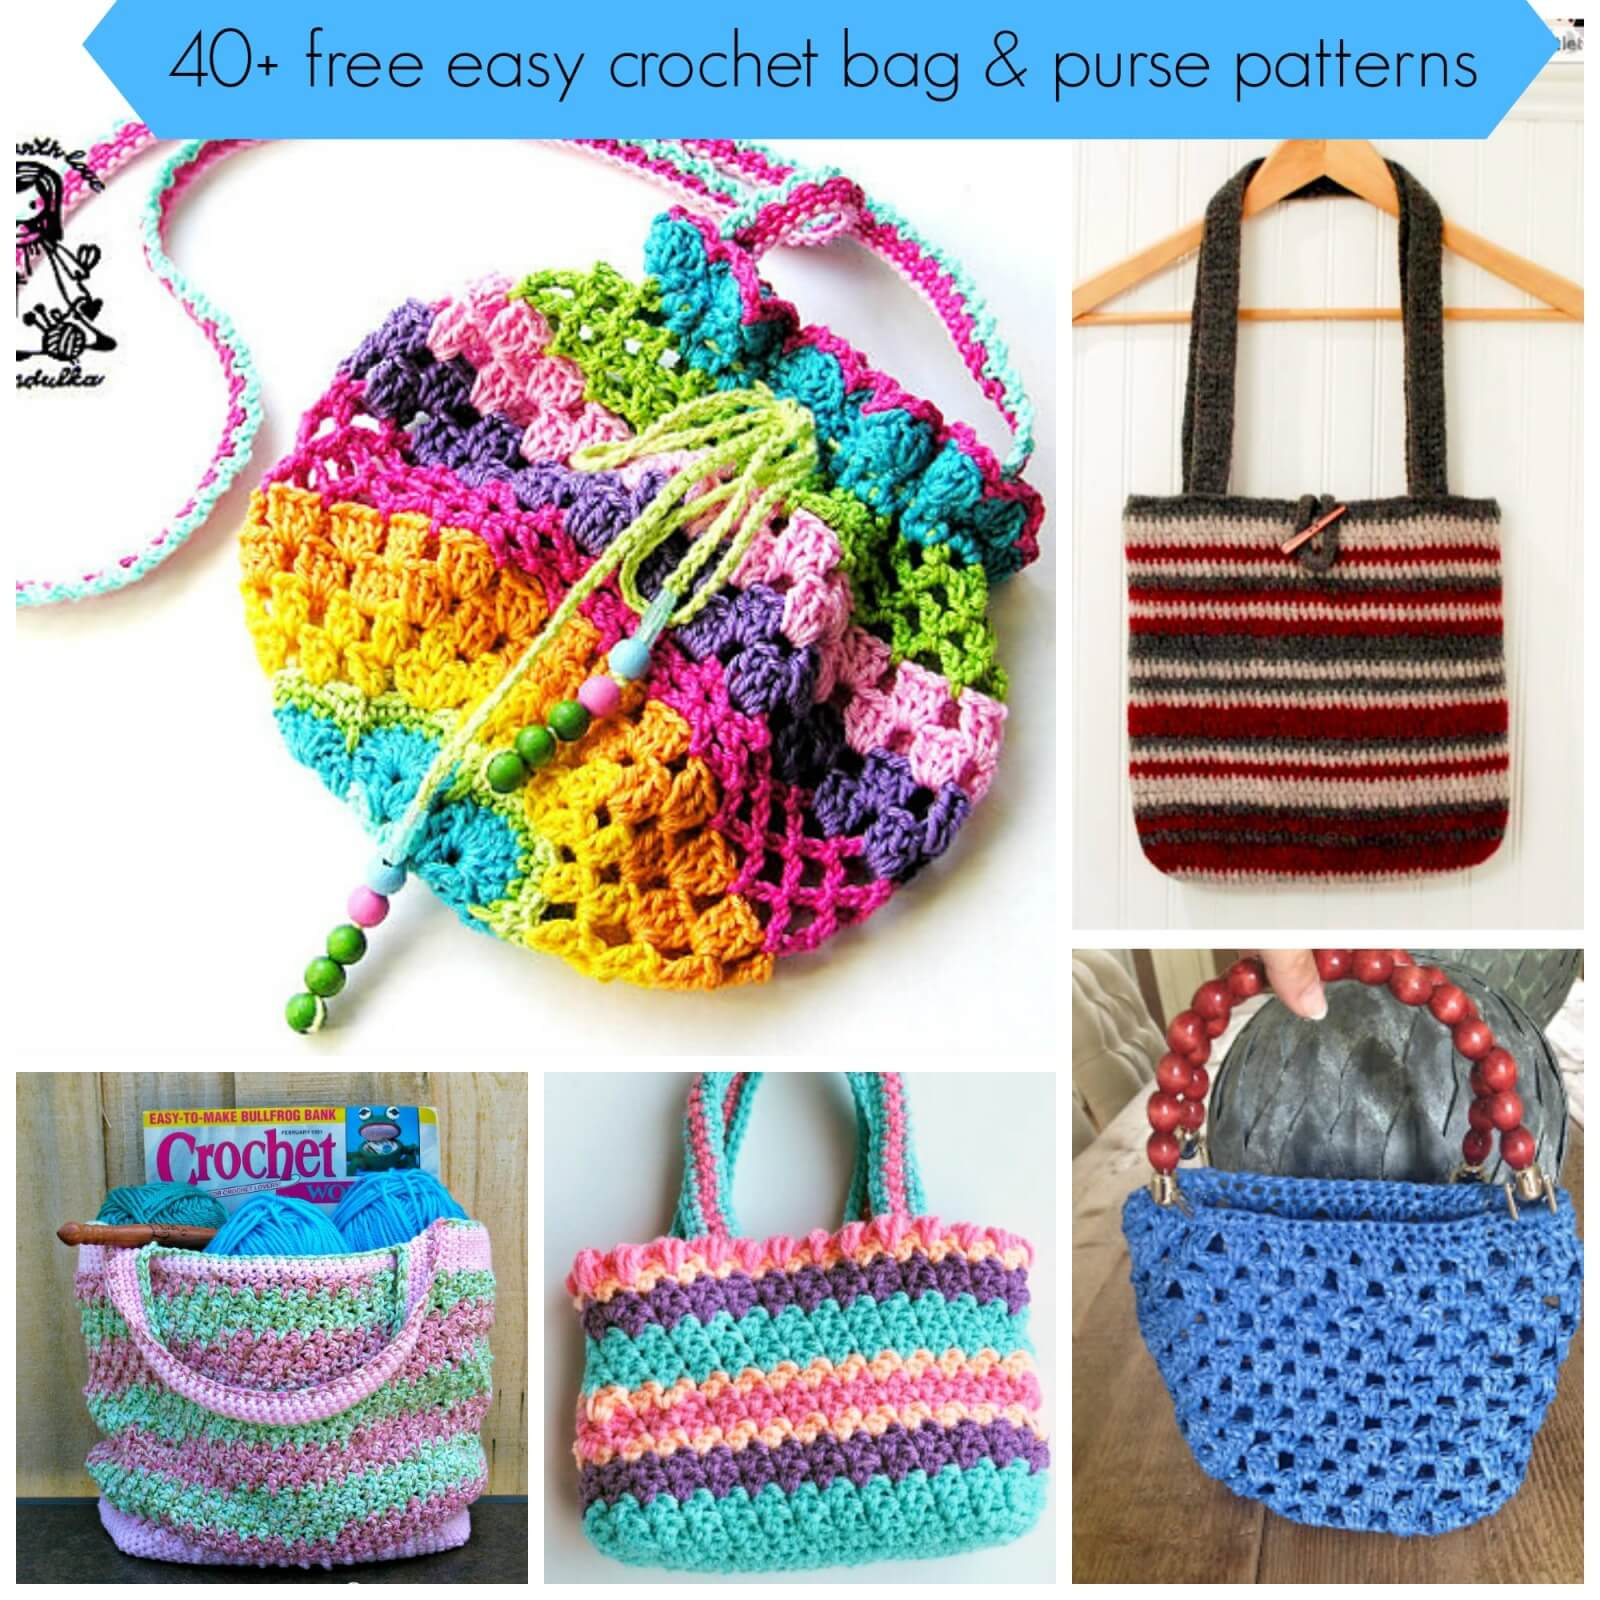 Free Crochet Purse Patterns For Beginners : 40+ free easy crochet bag & purse patterns